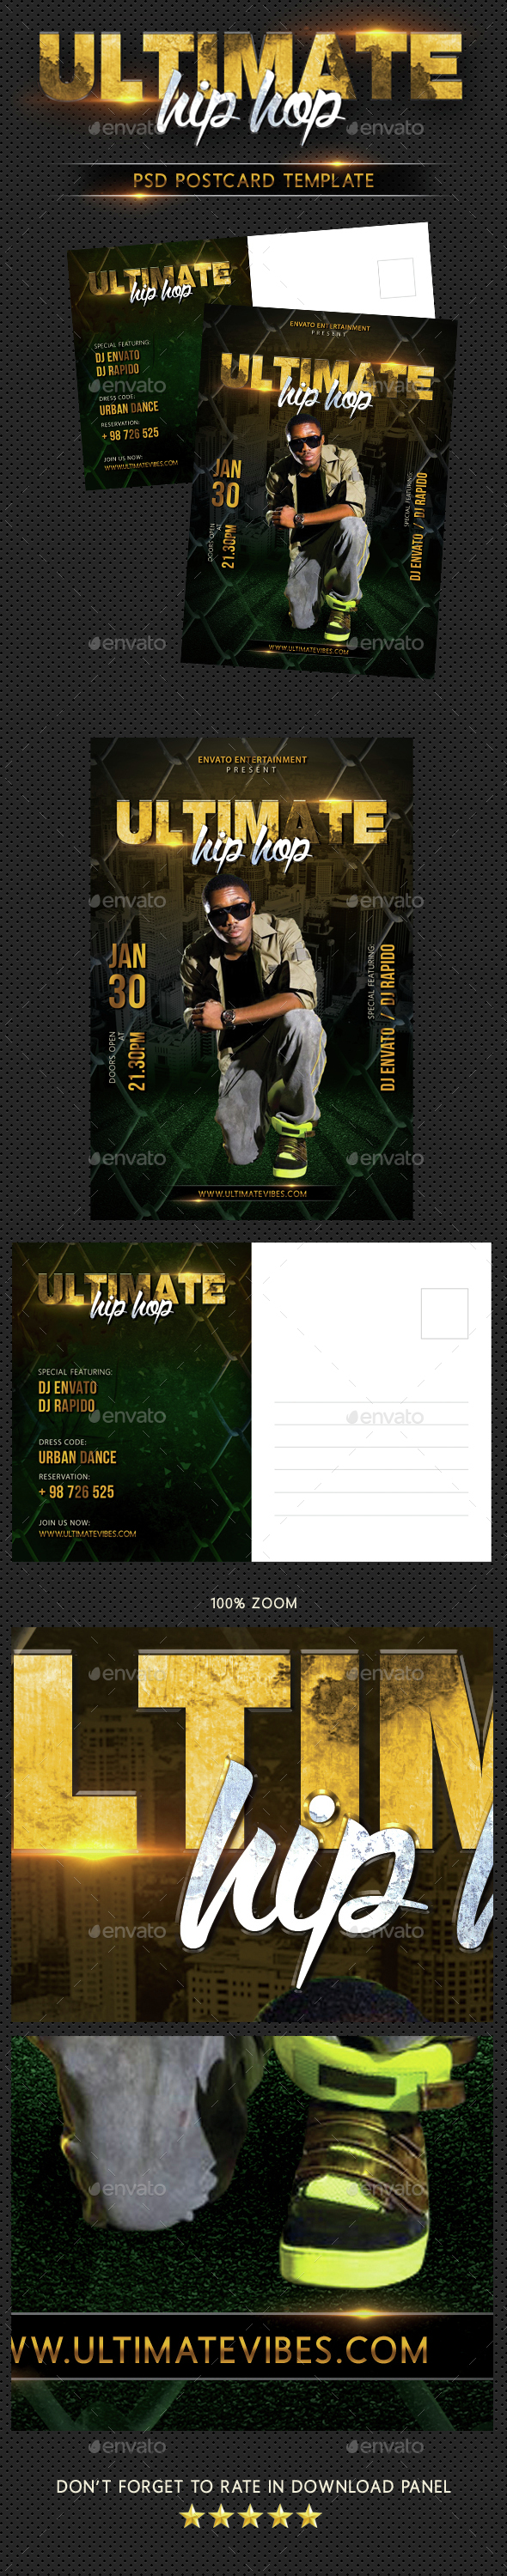 Hip Hop Ultimate Party Event Postcard - Cards & Invites Print Templates